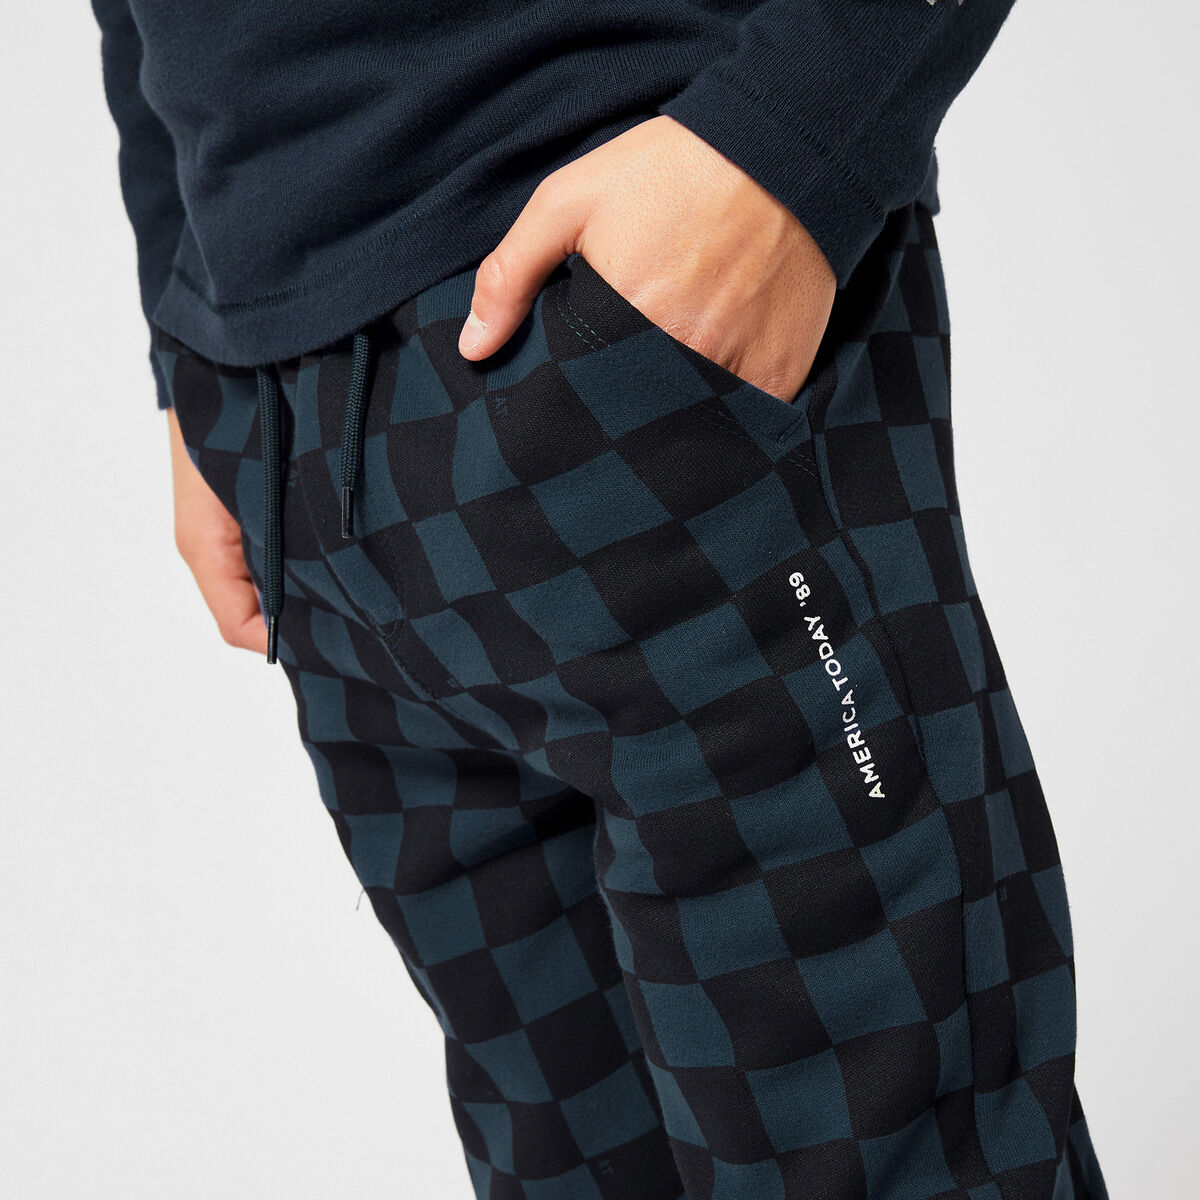 Jogging pants Cane jr